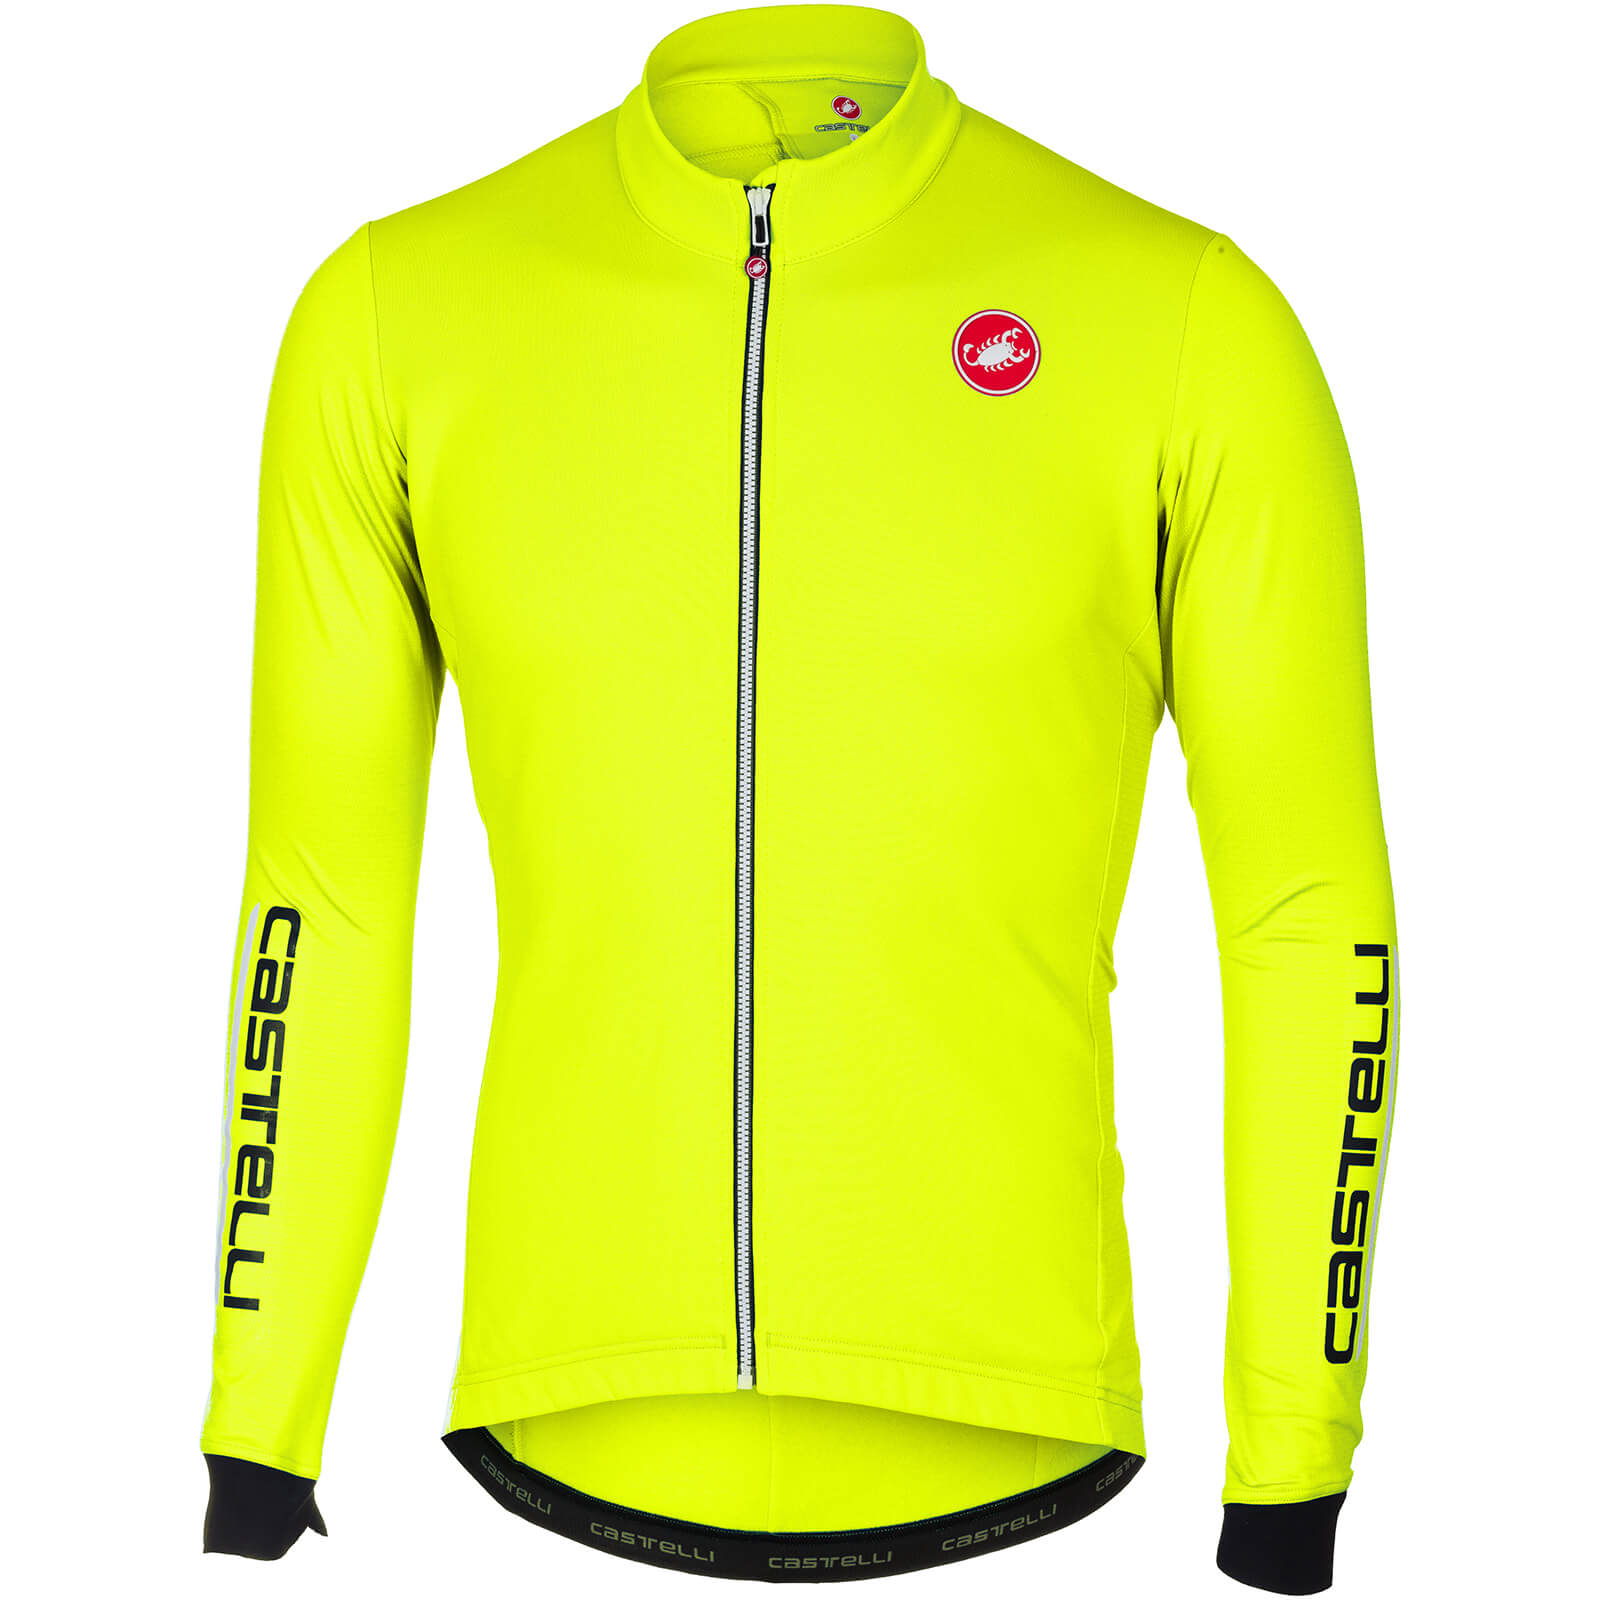 Castelli Puro 2 Long Sleeve Jersey - Yellow Fluo